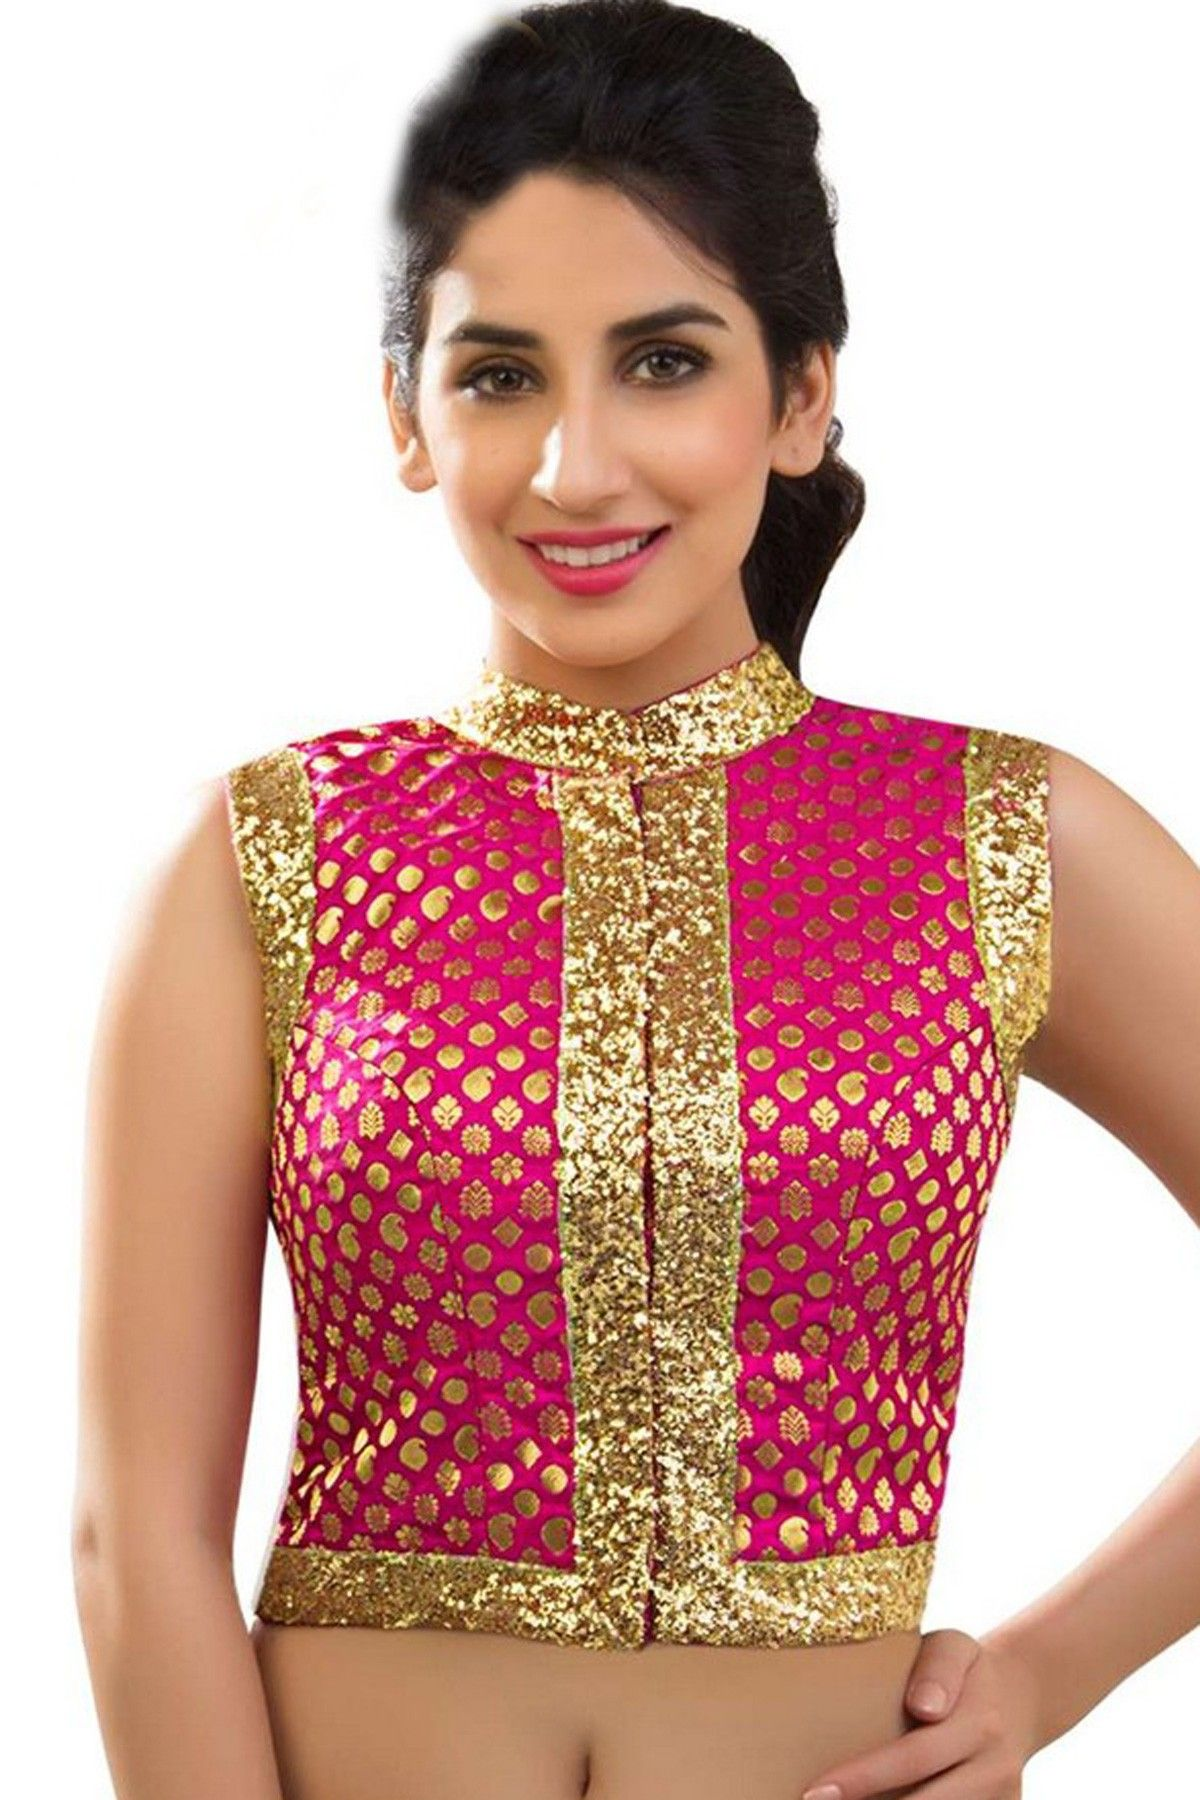 eb99177c40ae9b Rani pink & gold zari embroidered banarasi semi brocade blouse -BL526 |  indian blouse embroidery designs | #pink #gold #fancy #trendy #attractive  #pretty